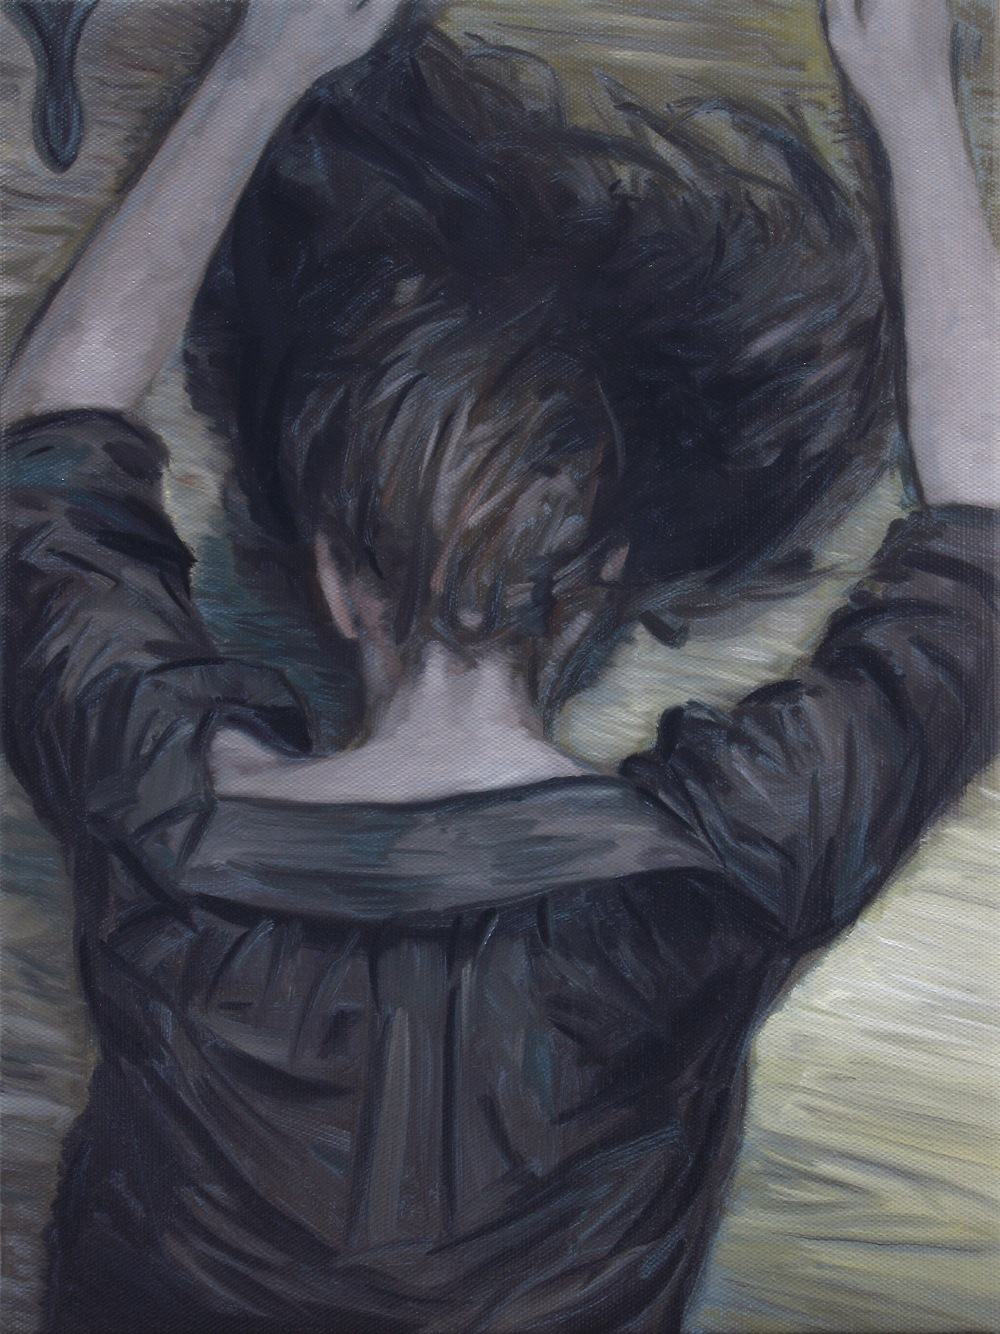 Down, 40x30cm, Oil on linen, 2013